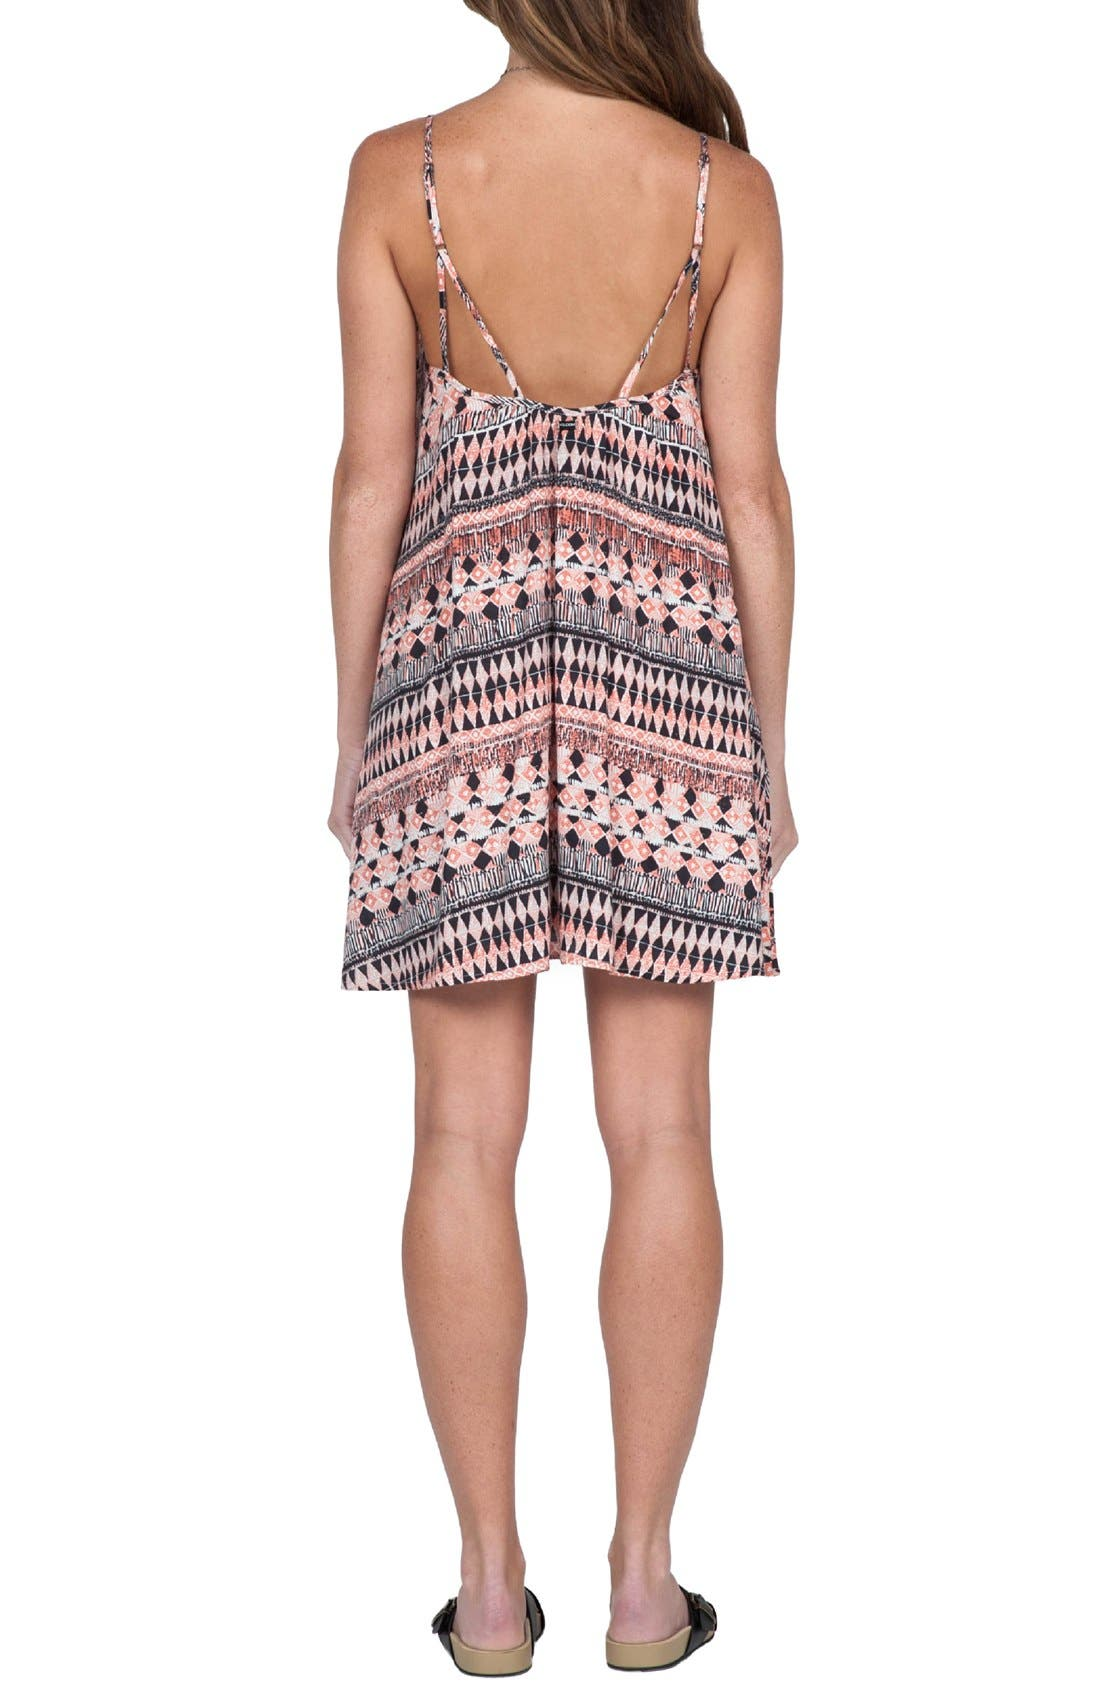 Alternate Image 2  - Volcom 'Back For U' Print Camisole Dress